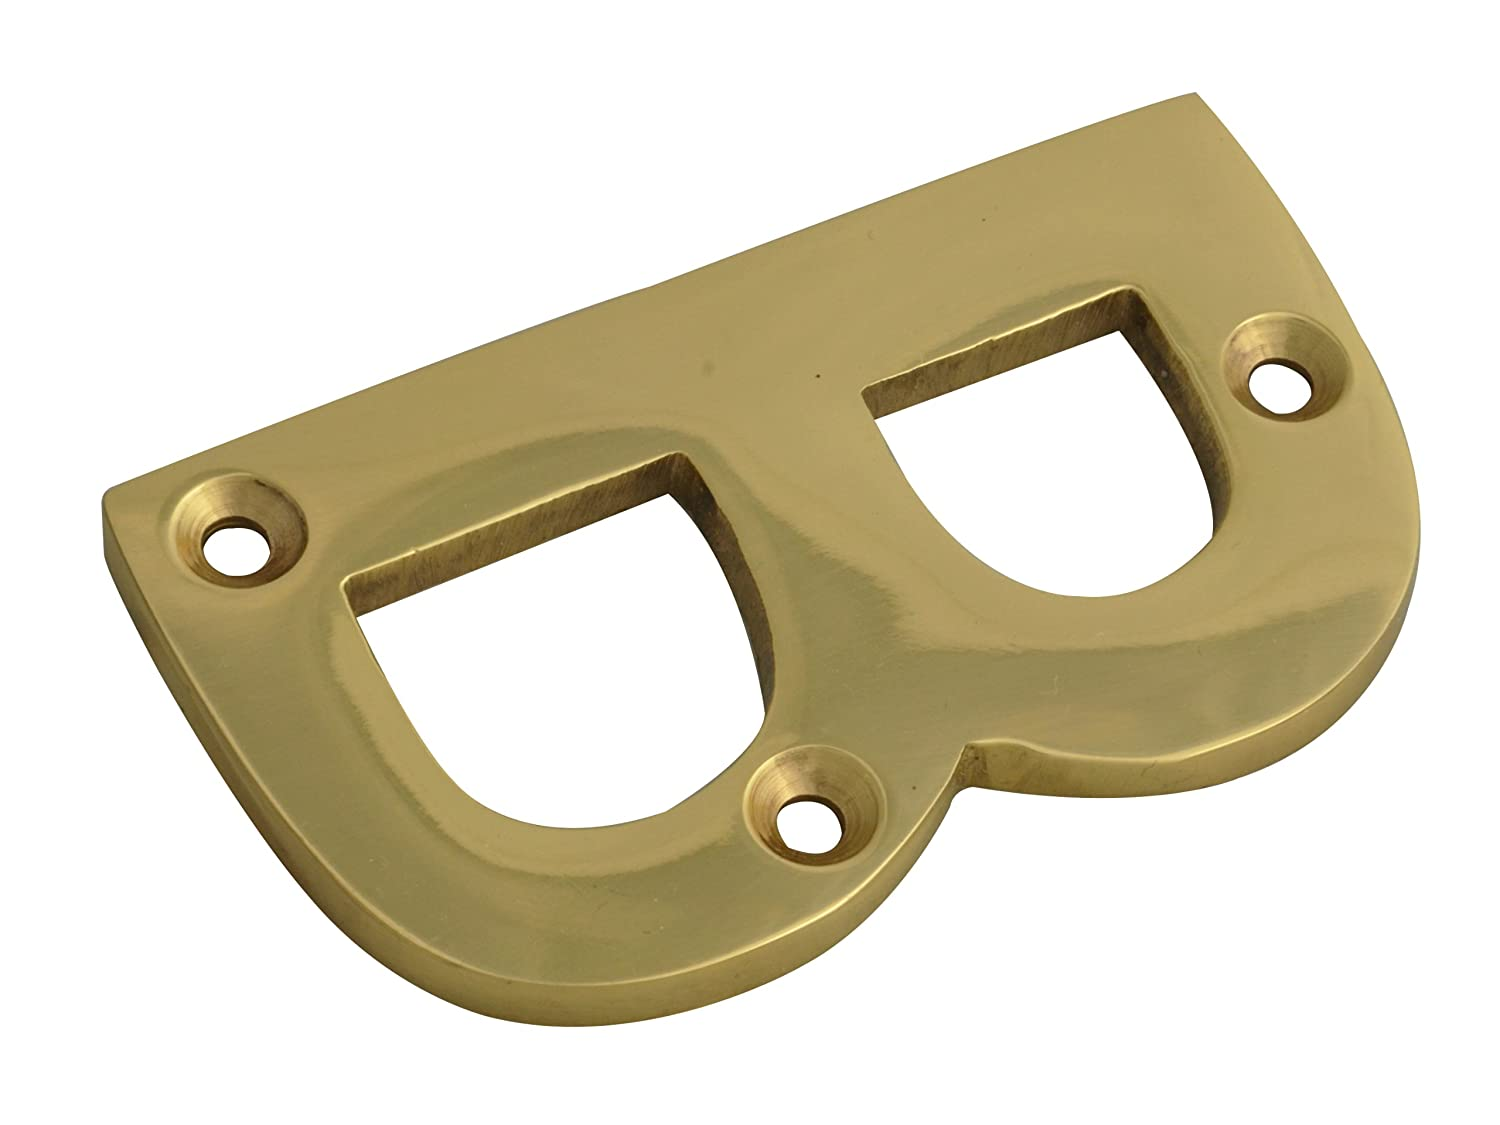 Forge Numeral Letter B - Brass Finish 75mm (3in) FGENUMBBR75